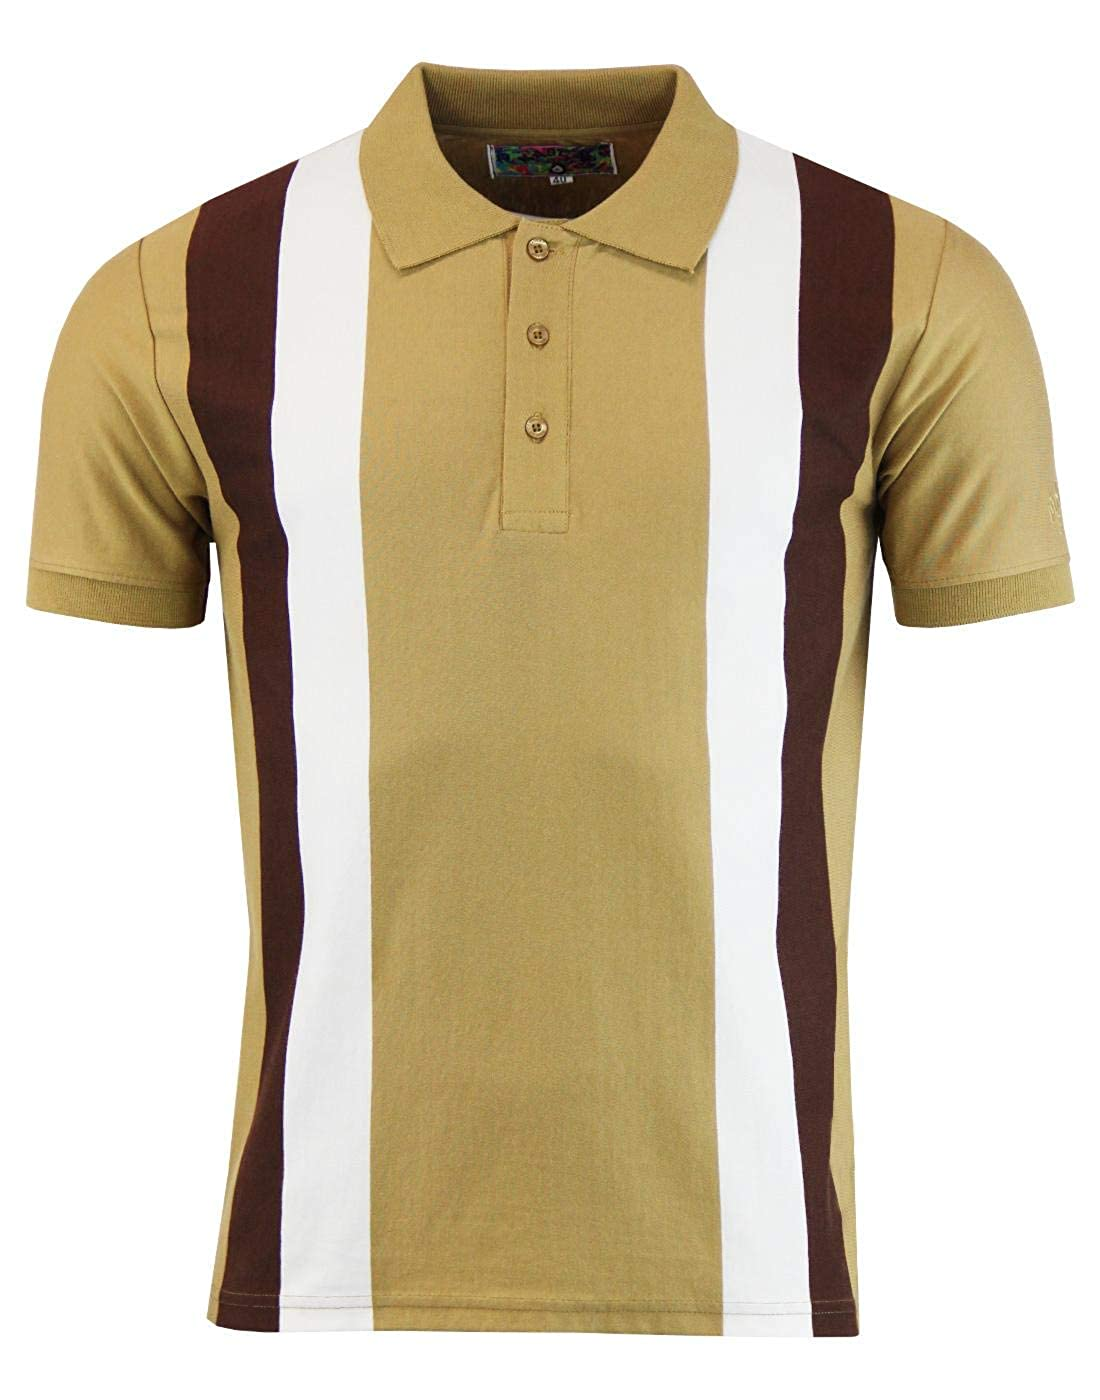 Vintage Shirts – Mens – Retro Shirts Madcap England Moody Mens 60s Mod Stripe Panel Polo in Caramel £29.99 AT vintagedancer.com